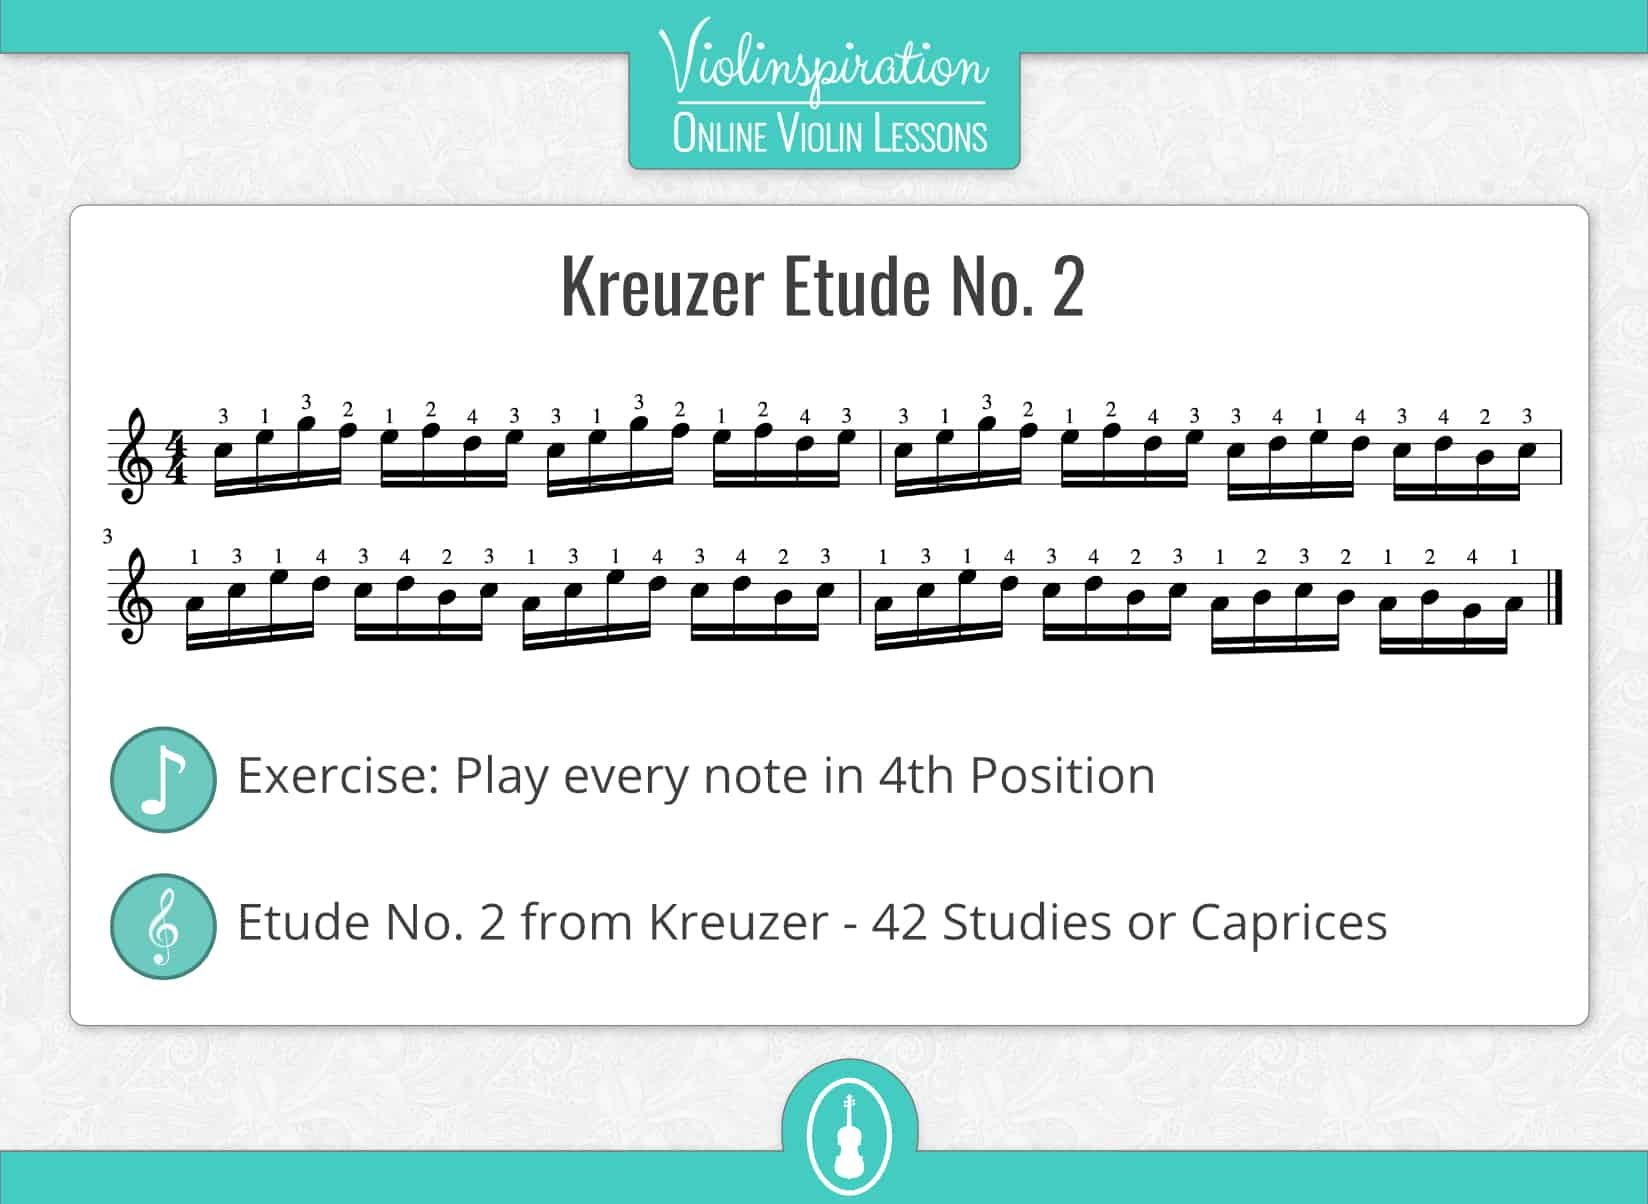 Fourth Violin Position Exercise